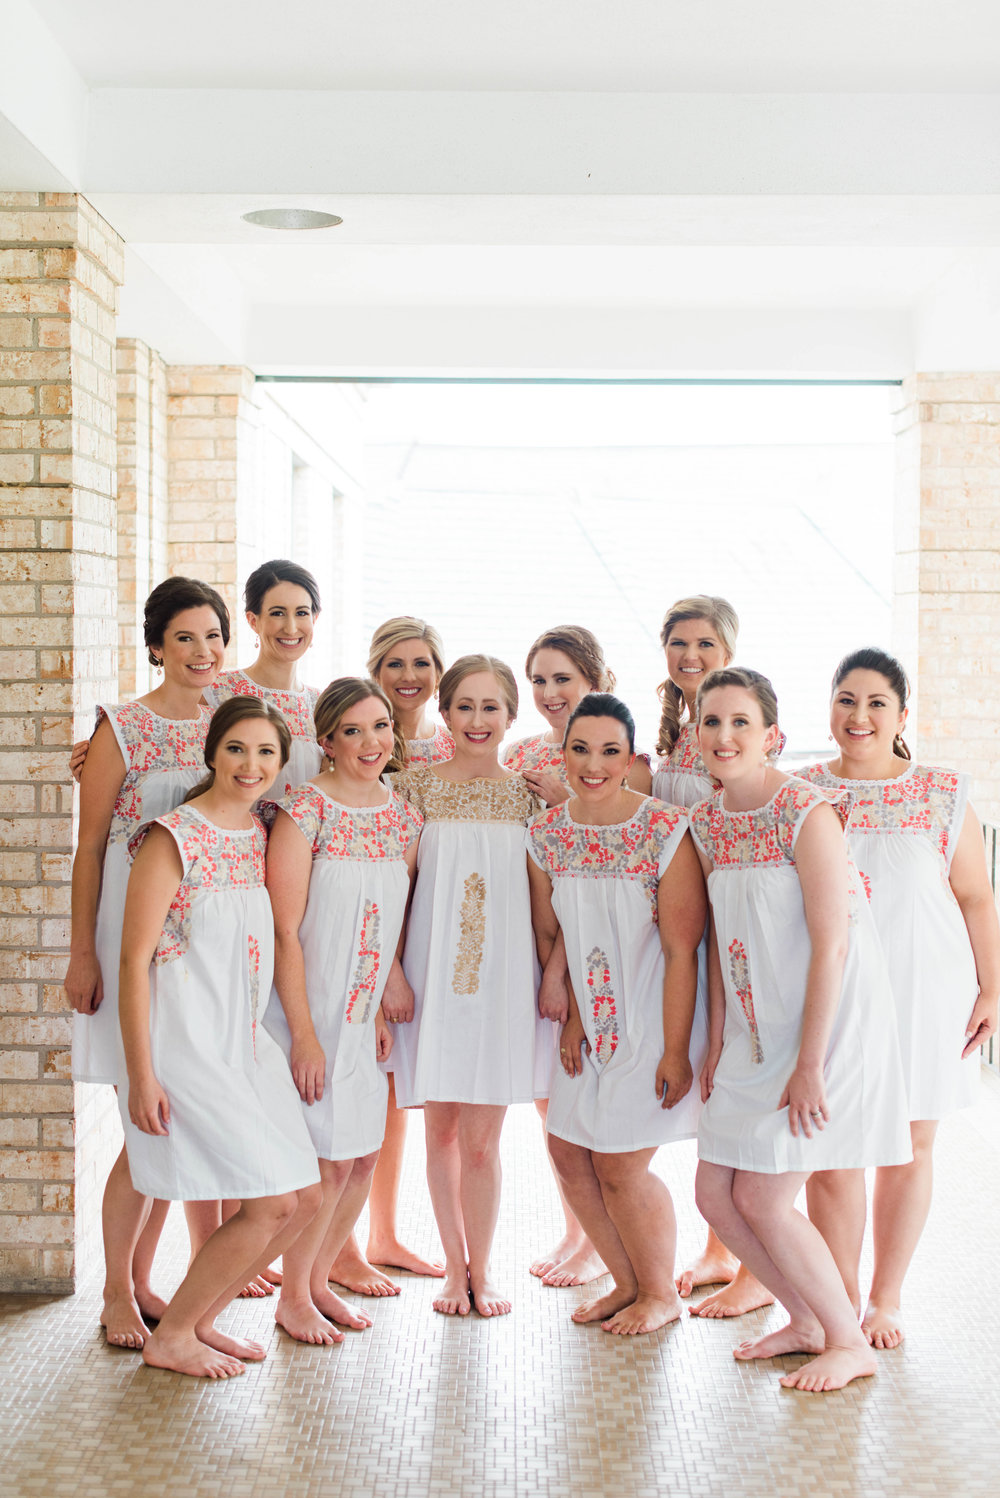 Fine-Art-Film-Houston-Wedding-Photographer-Best-Top-Luxury-Texas-Austin-Dallas-Destination-Dana-Fernandez-Photography-River-Oaks-Country-Club-South-Main-Baptist-Ceremony-Reception-Wedding-4.jpg